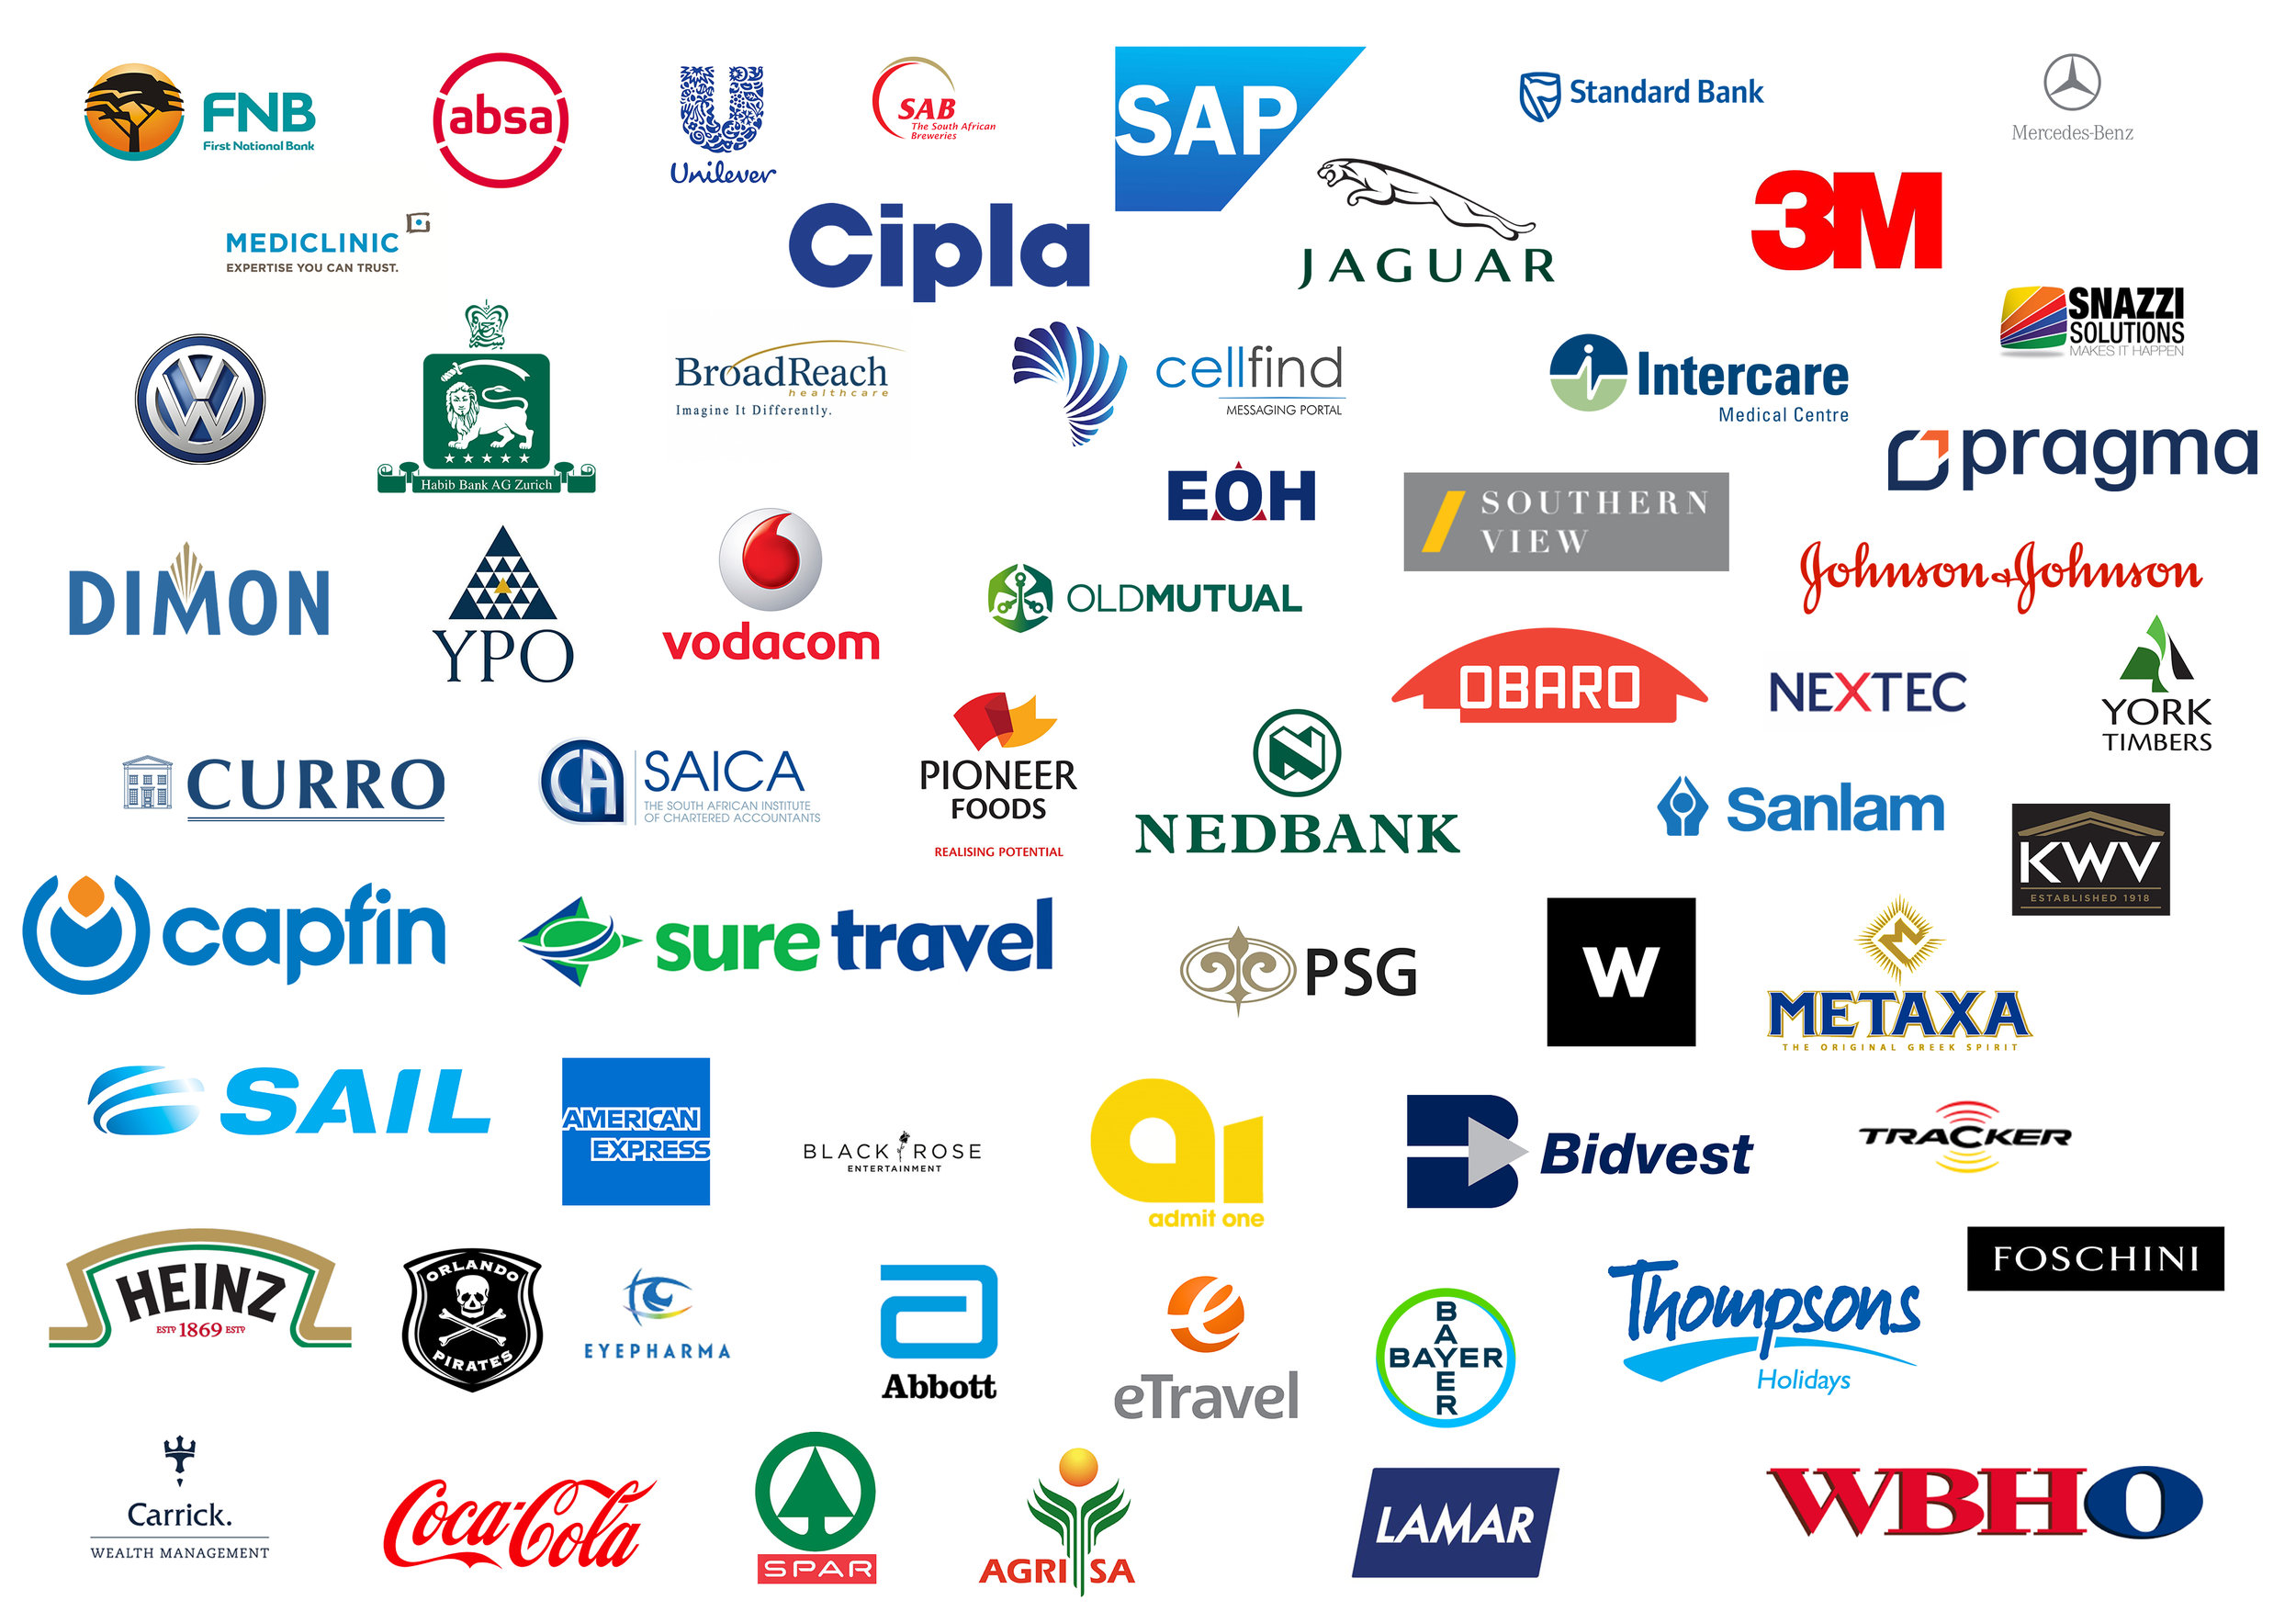 Image with various brand logos that Hein has worked with, including SAP, VW, Jaguar, Vodacom, Metaxa, to name a few.